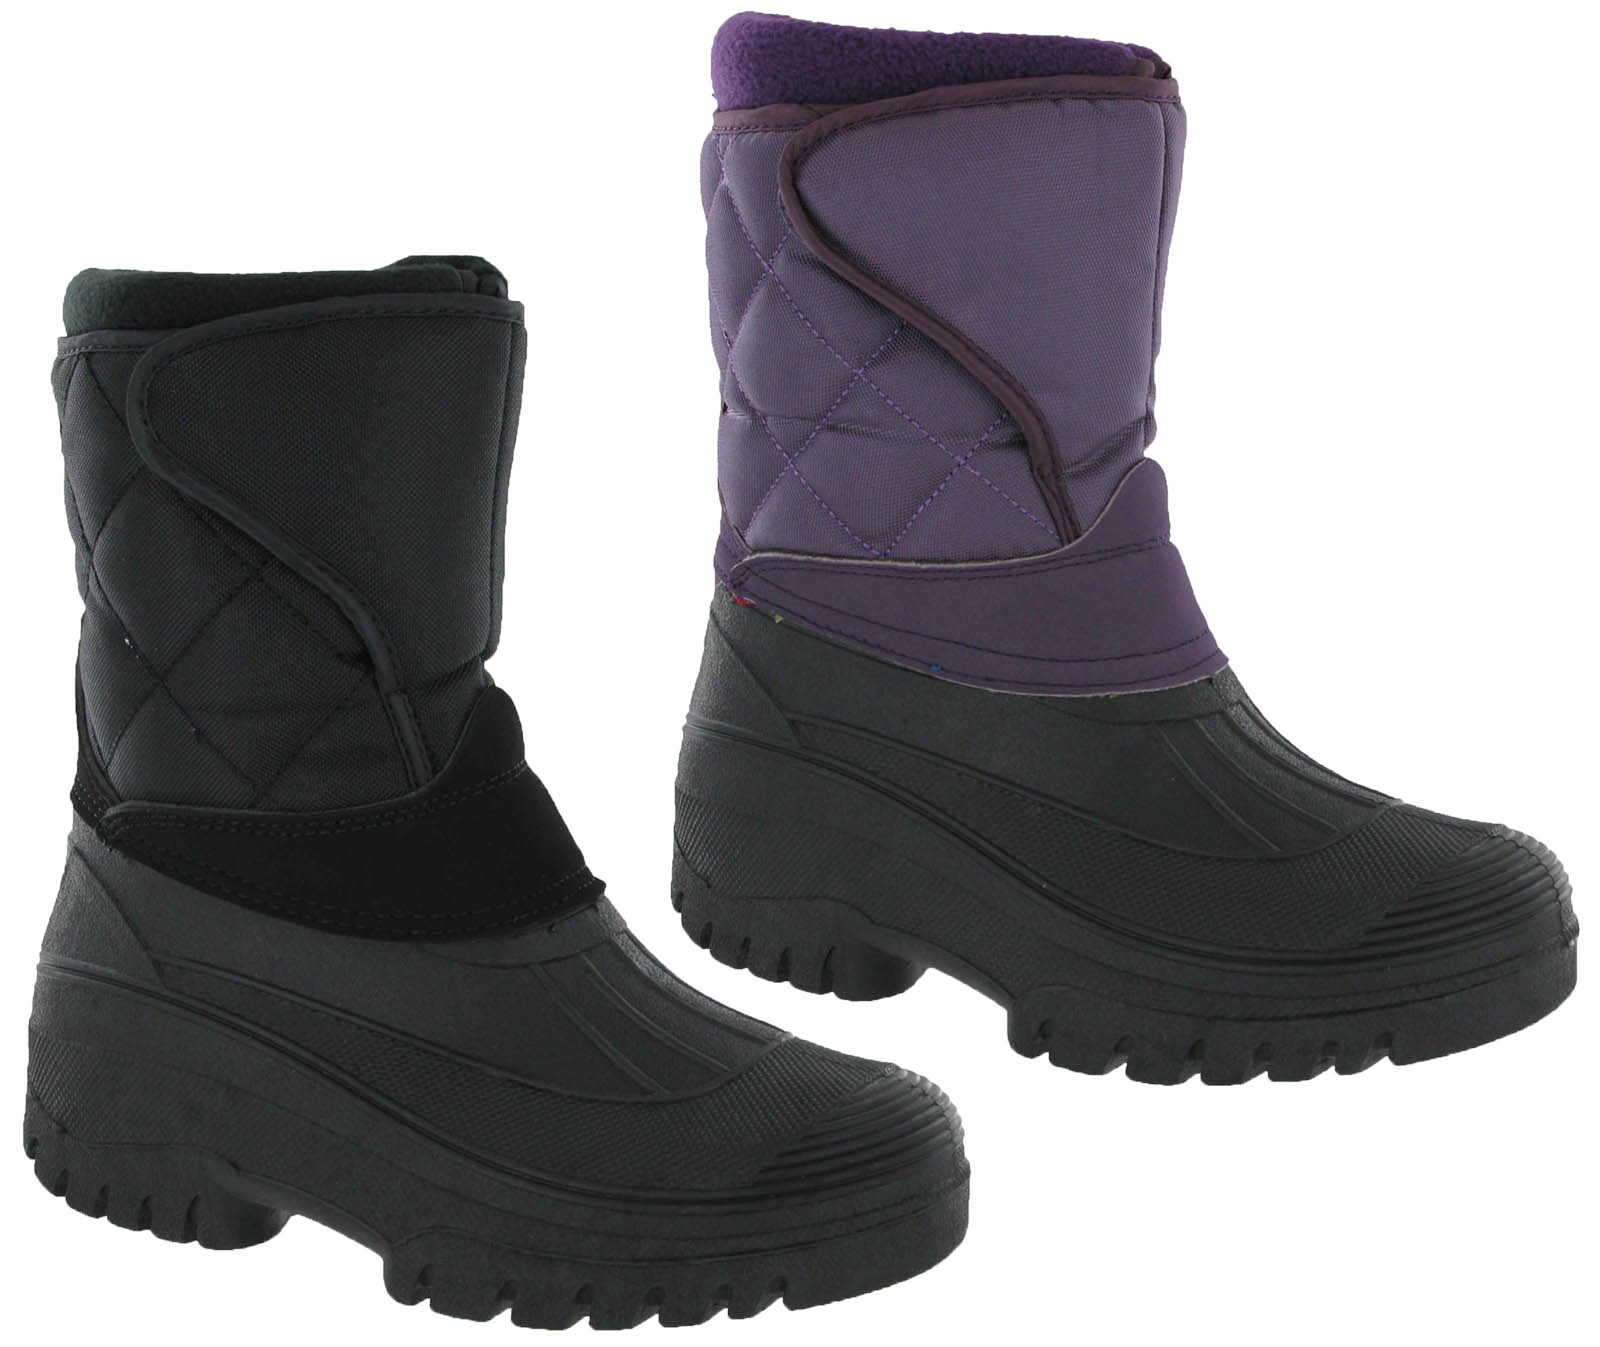 Perfect While The Lightweight Molded EVA Midsole And Rubber Outsole Provide Comfort, Durability And Excellent Traction The Bearpaw Womens Quinevere Snow Boot Is Especially Great For Outdoor Functions During